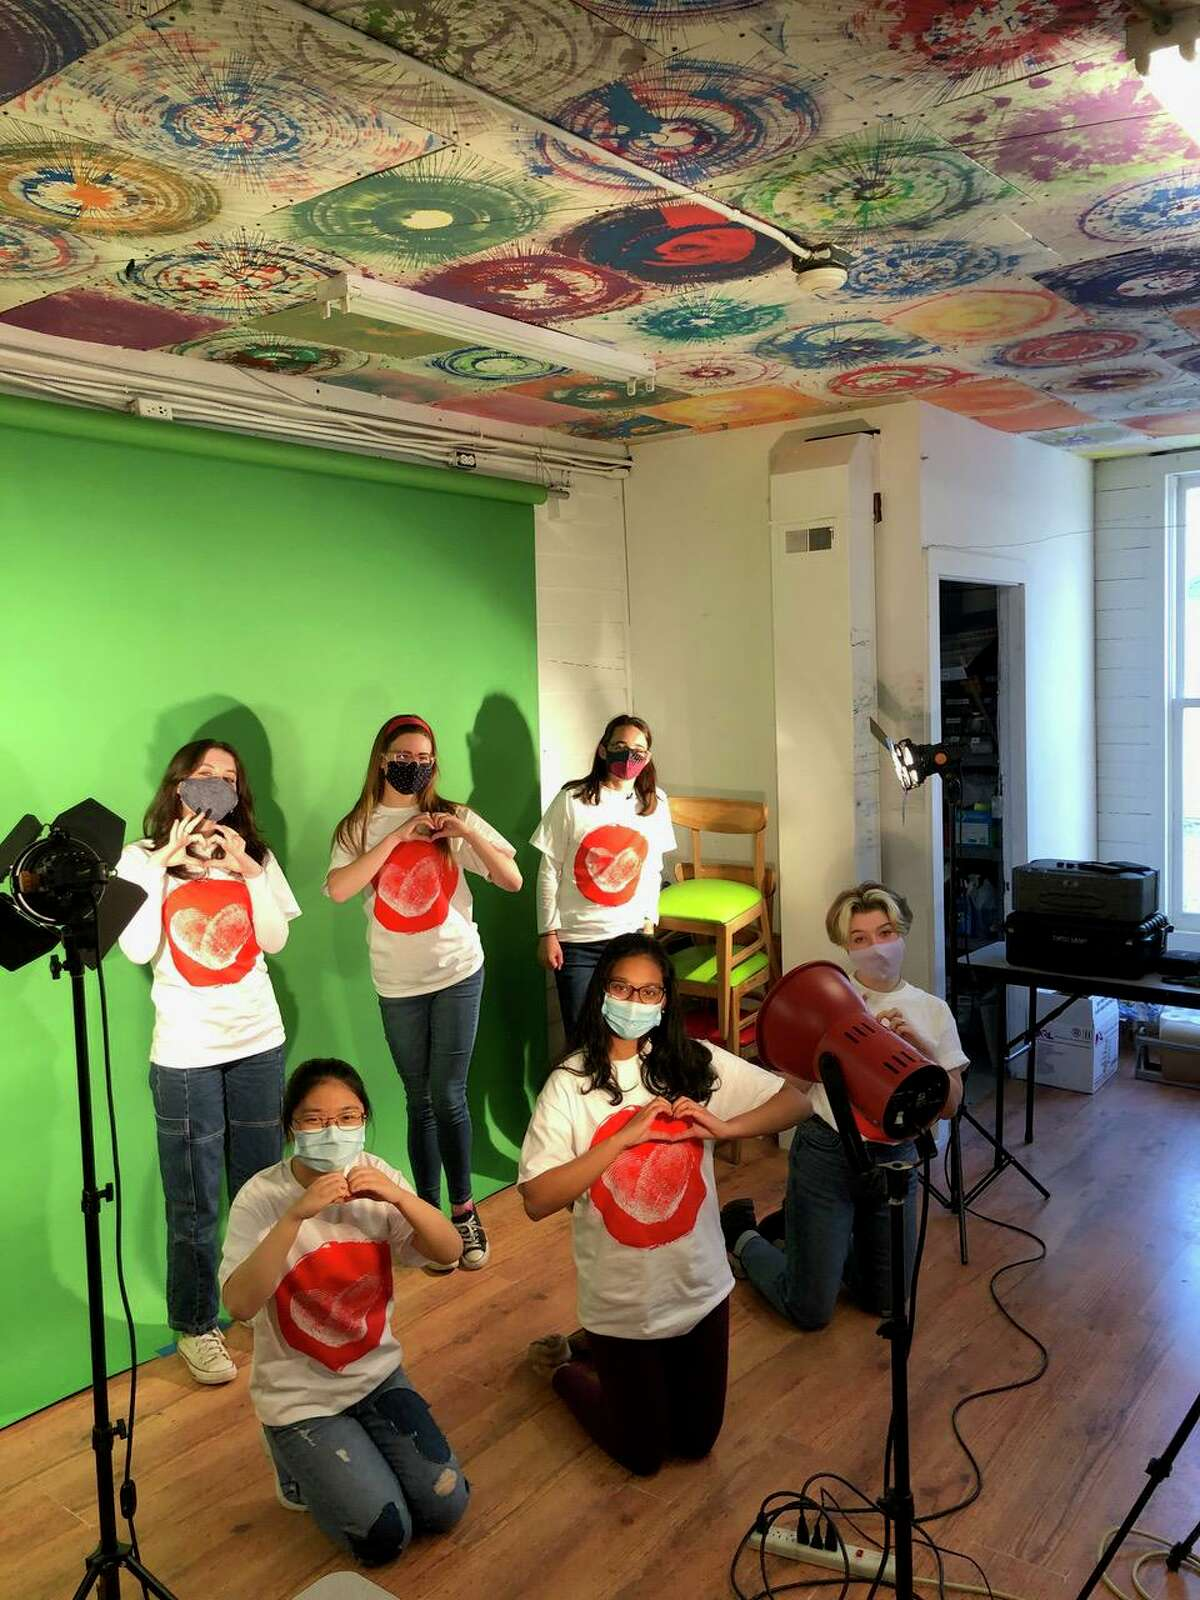 From left, front row, Yaeyoung Min, Ishaani Pradeep, Riley Mahon. From left, back row, Bianka Laufer, Annabelle Colonna, Owen Kent, working on promotional video for the New Milford My Heart Beats For initiative.